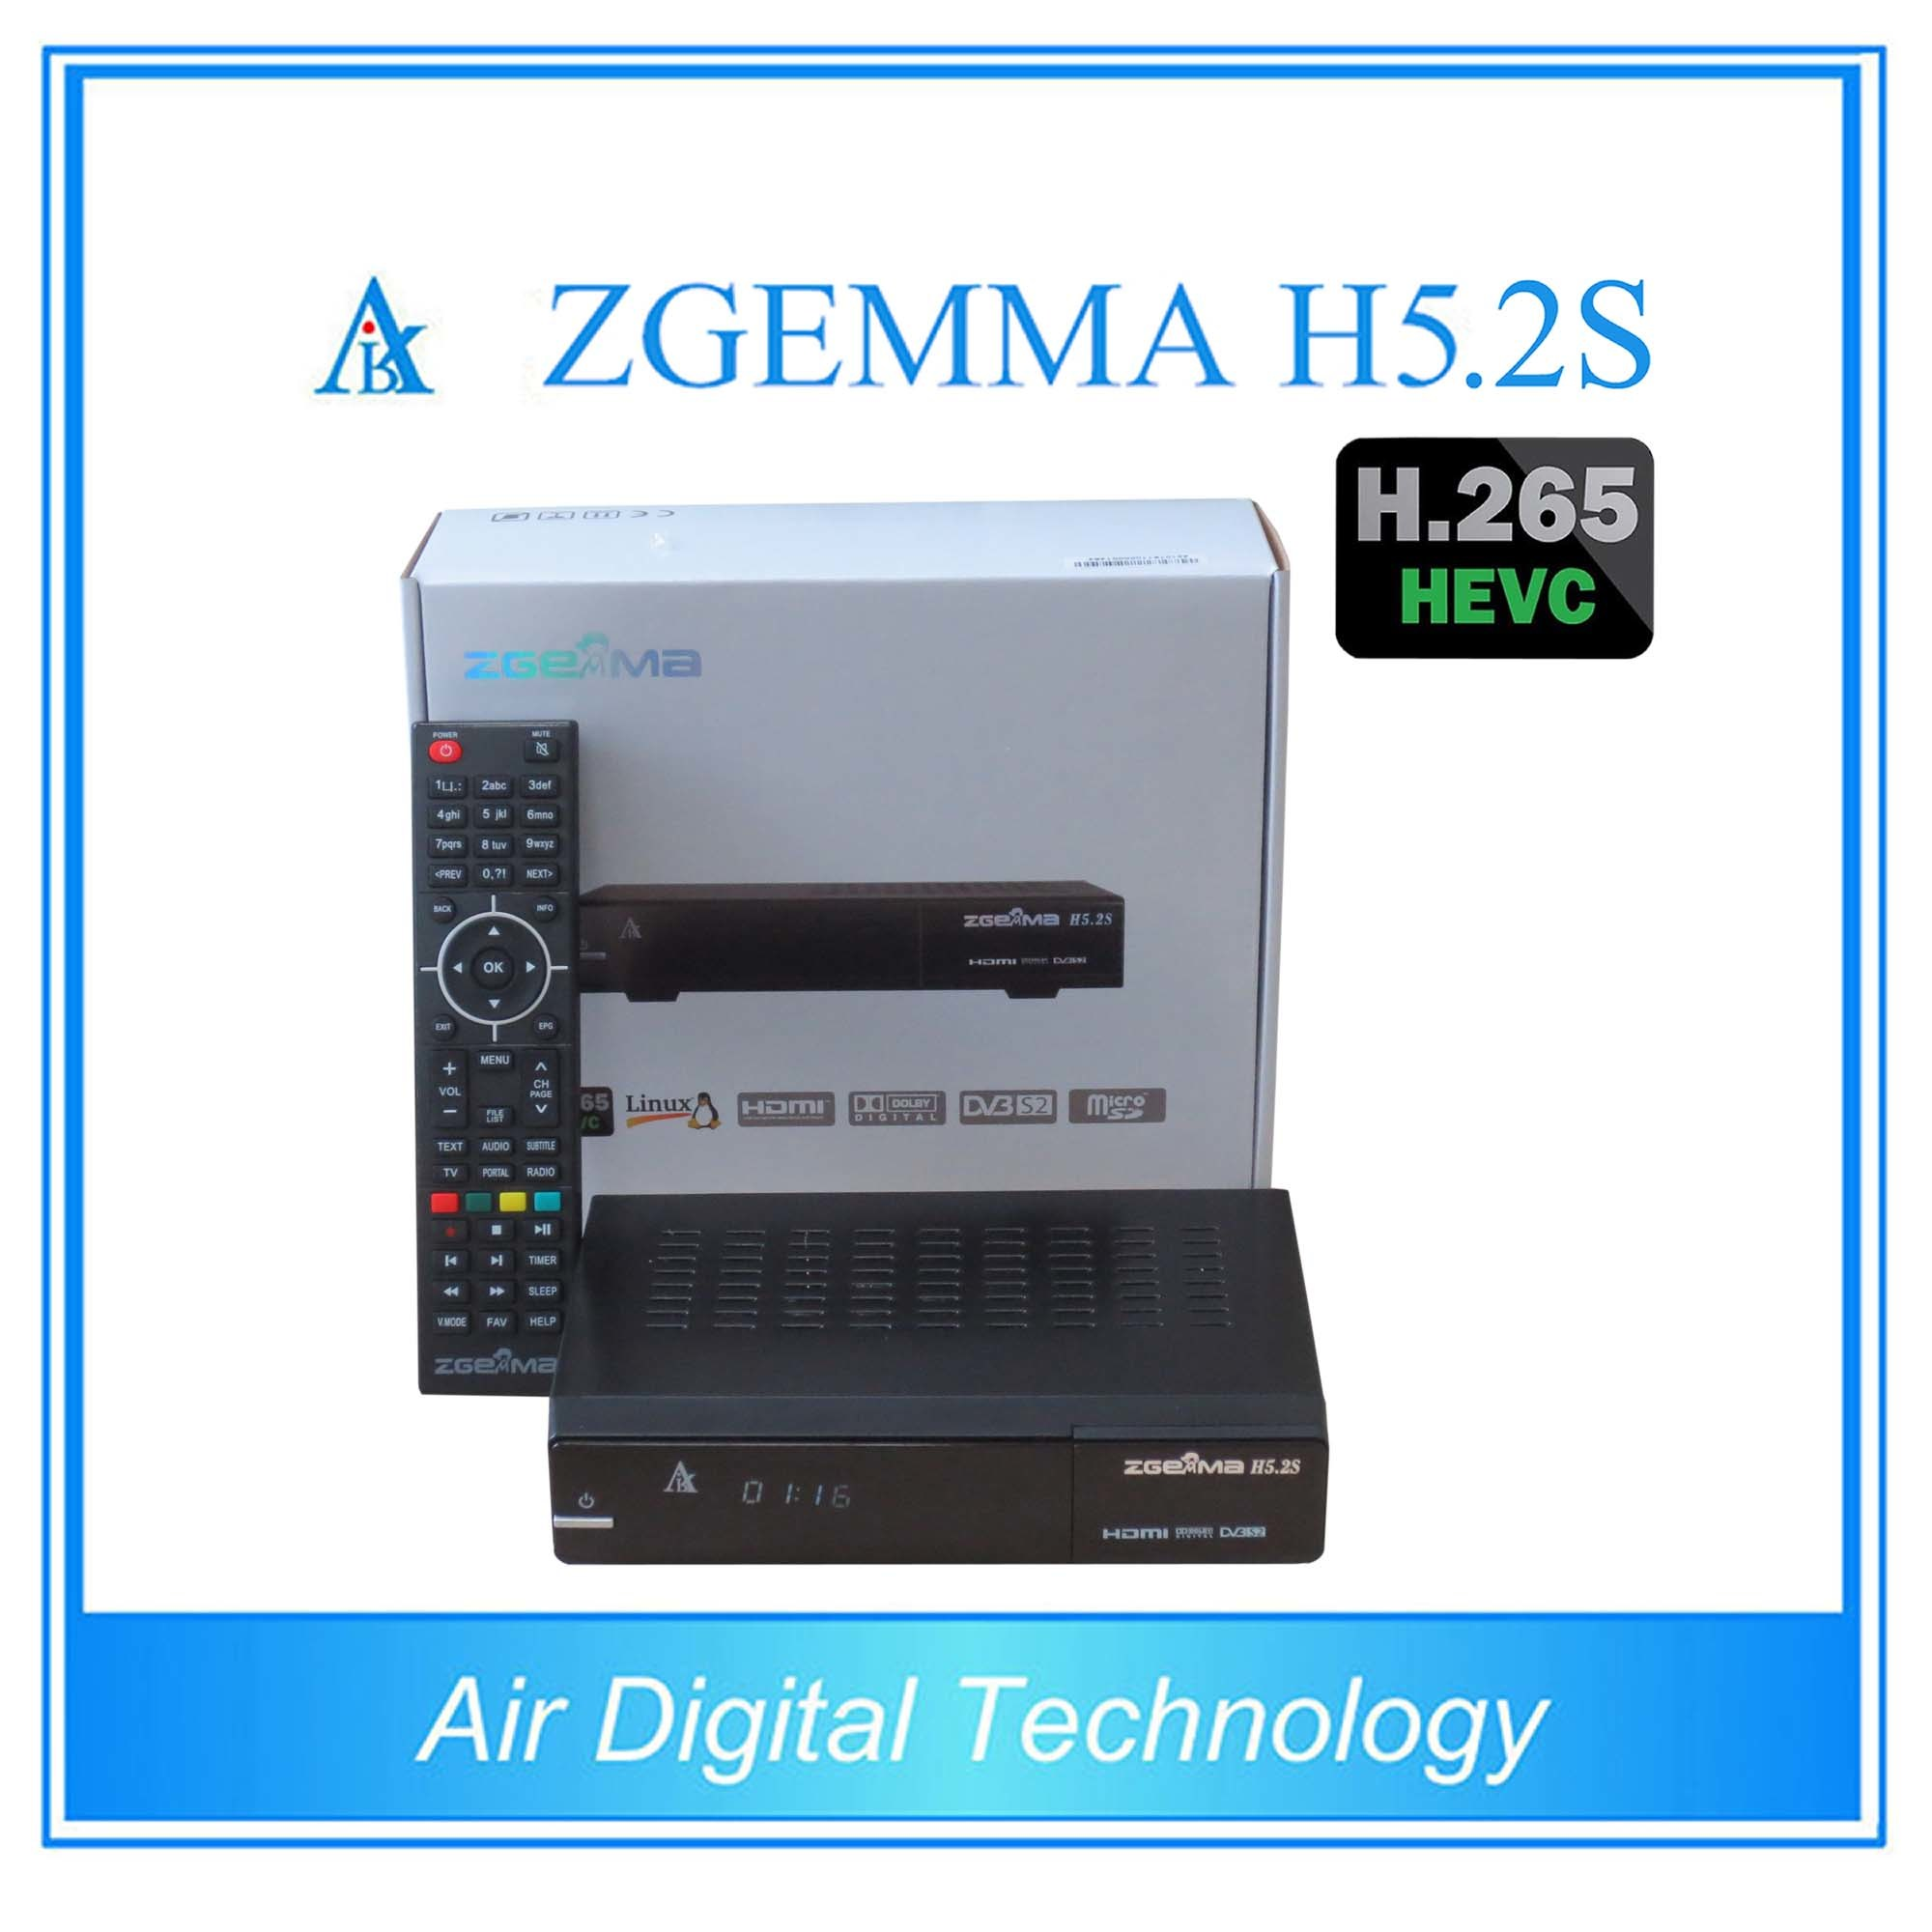 New Product Dual Core Bcm73625 H. 265 TV Decoder Twin DVB S/S2 Zgemma H5.2s